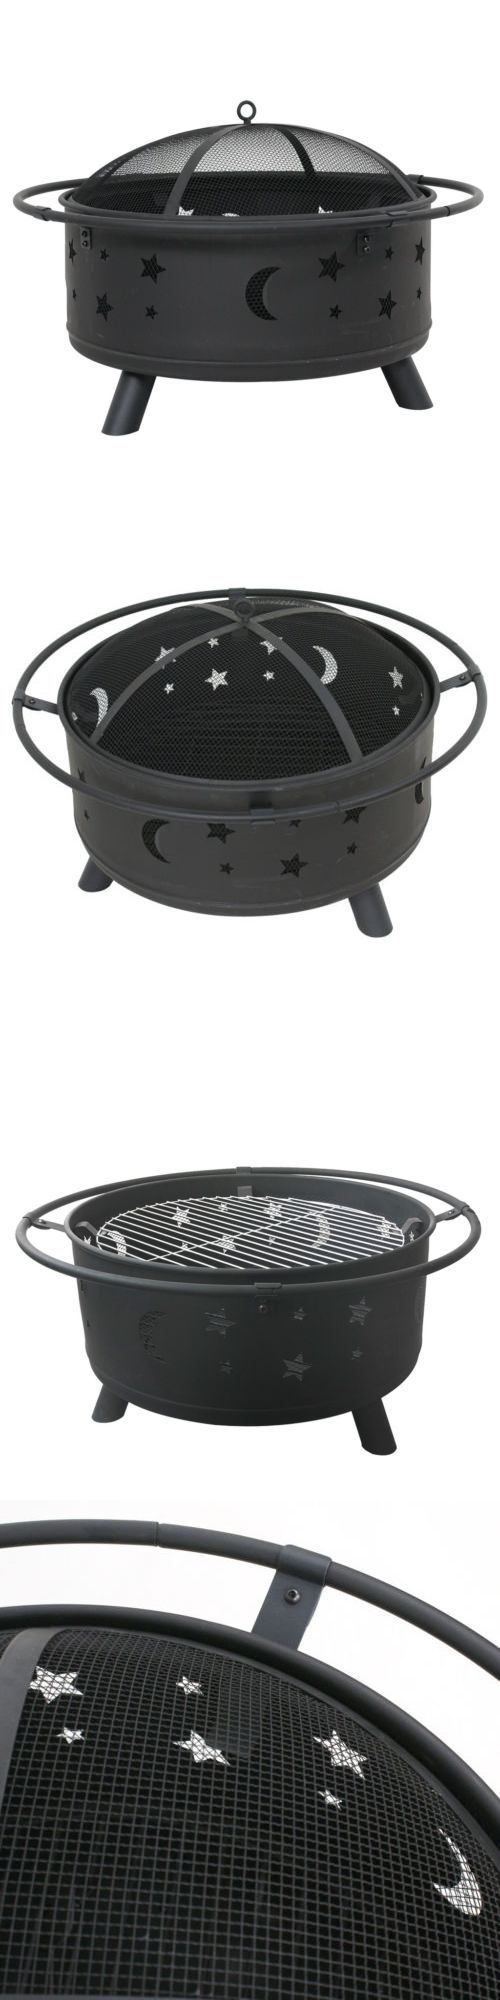 fire pits and chimineas 85916 fire bowl pit outdoor patio